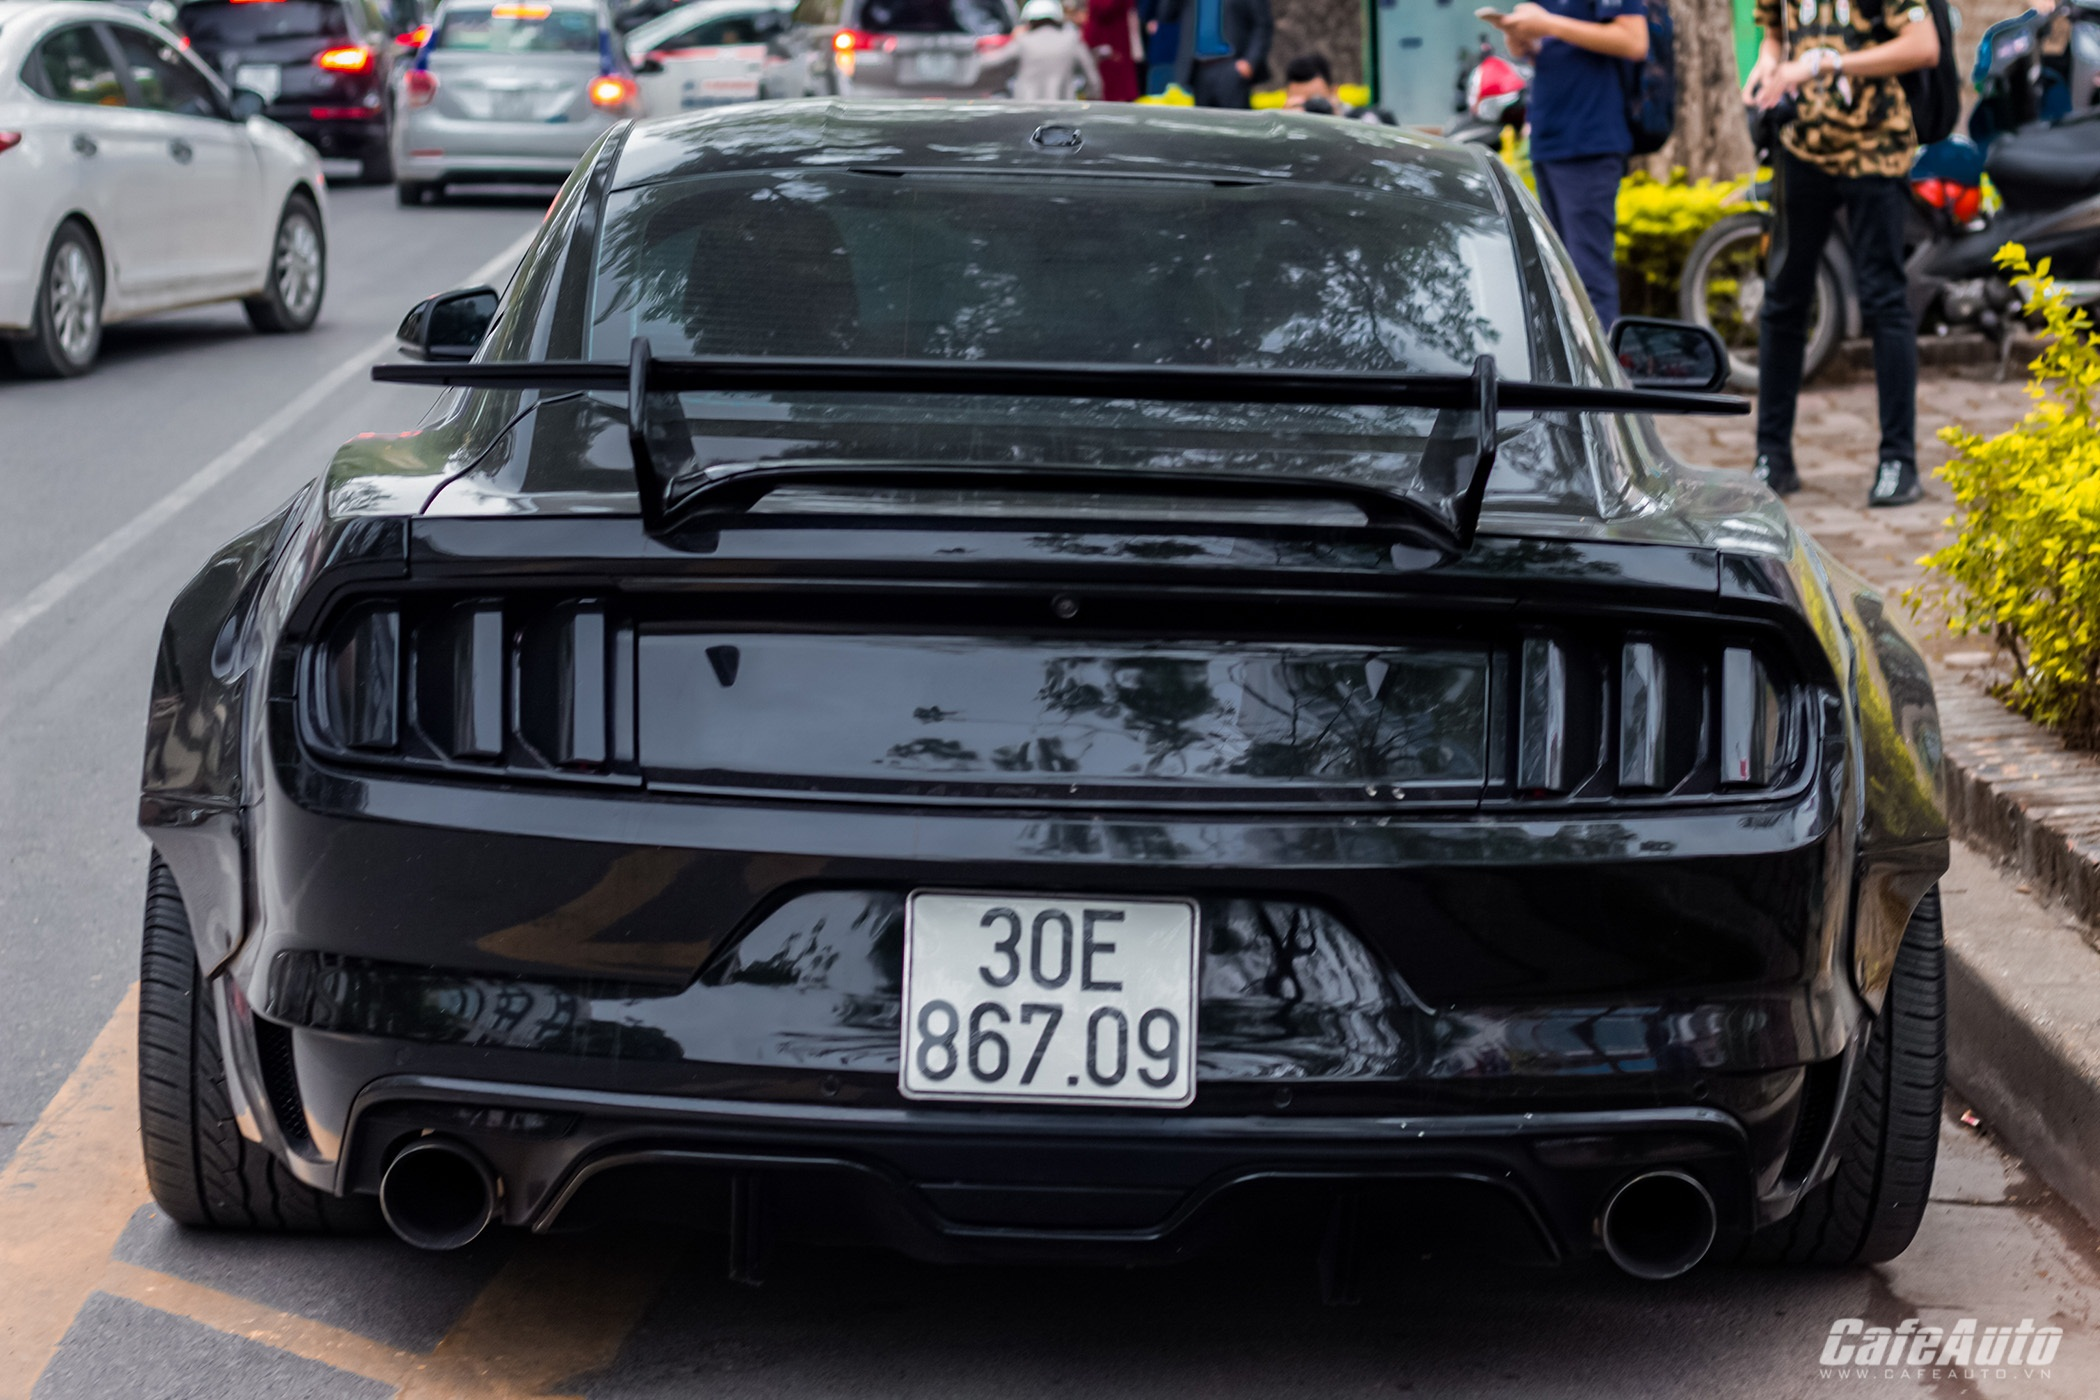 mustangwidebody-cafeautovn-5